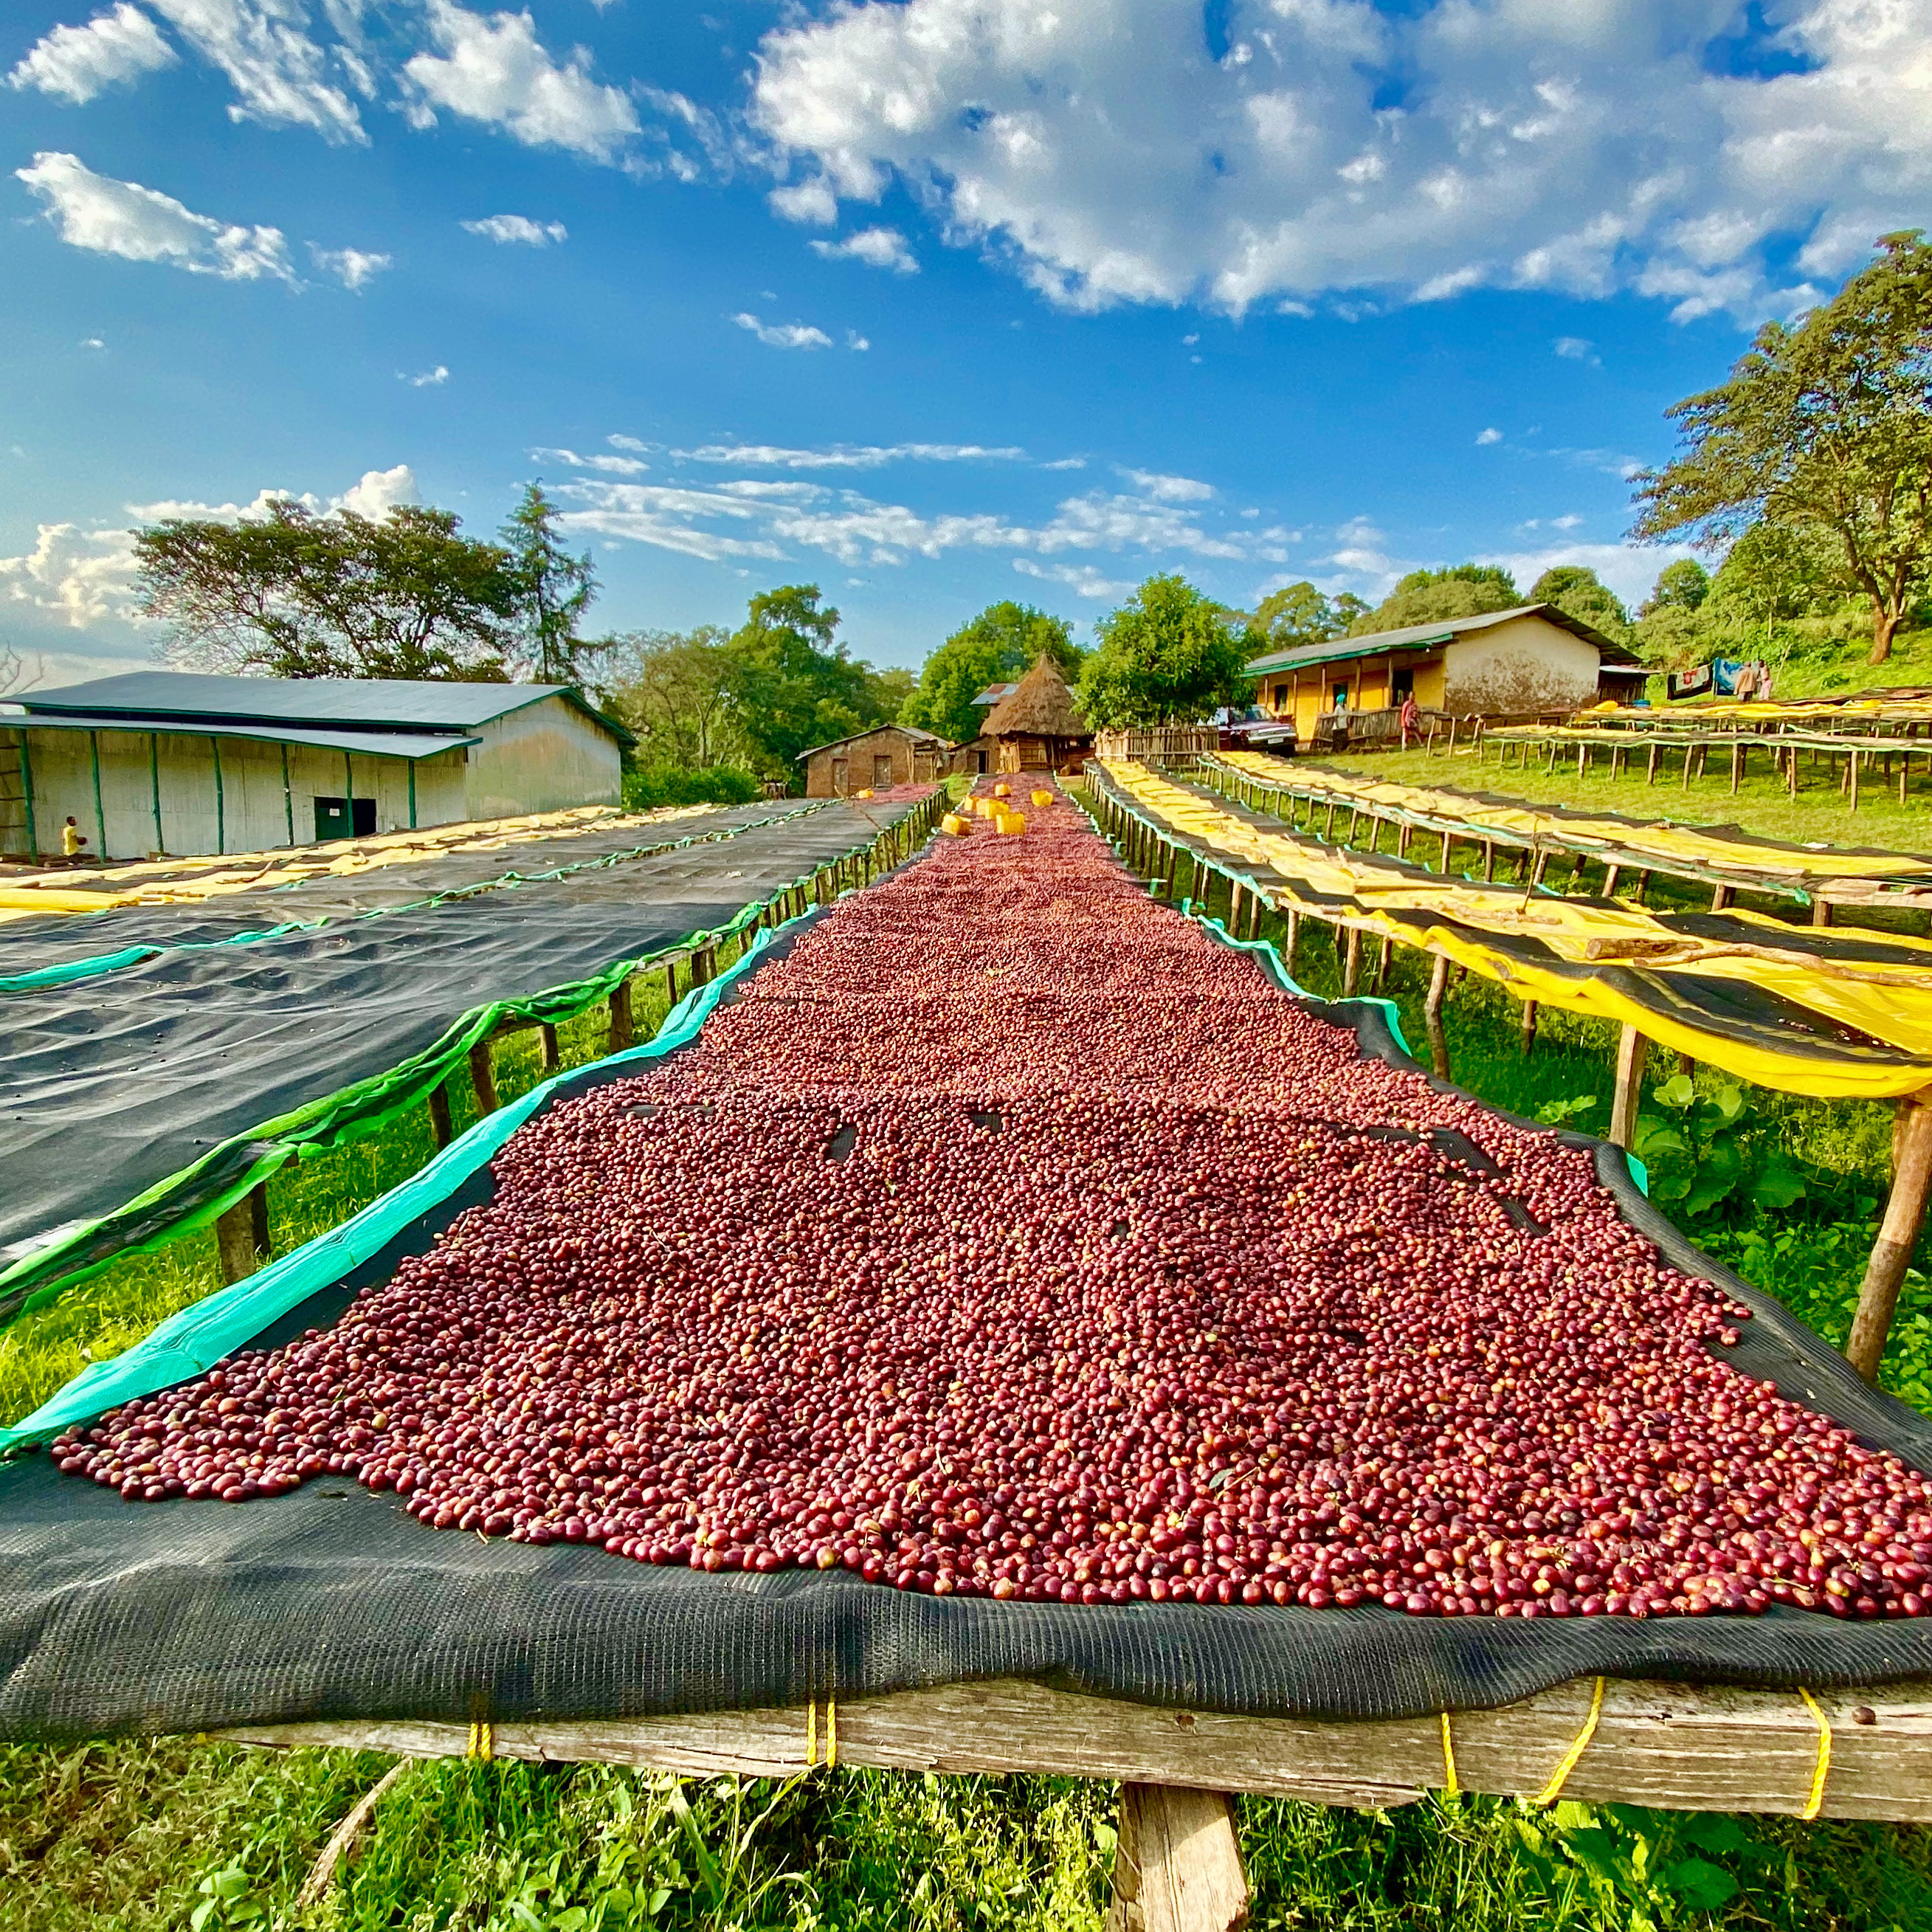 Natural processed cherries drying on raised beds